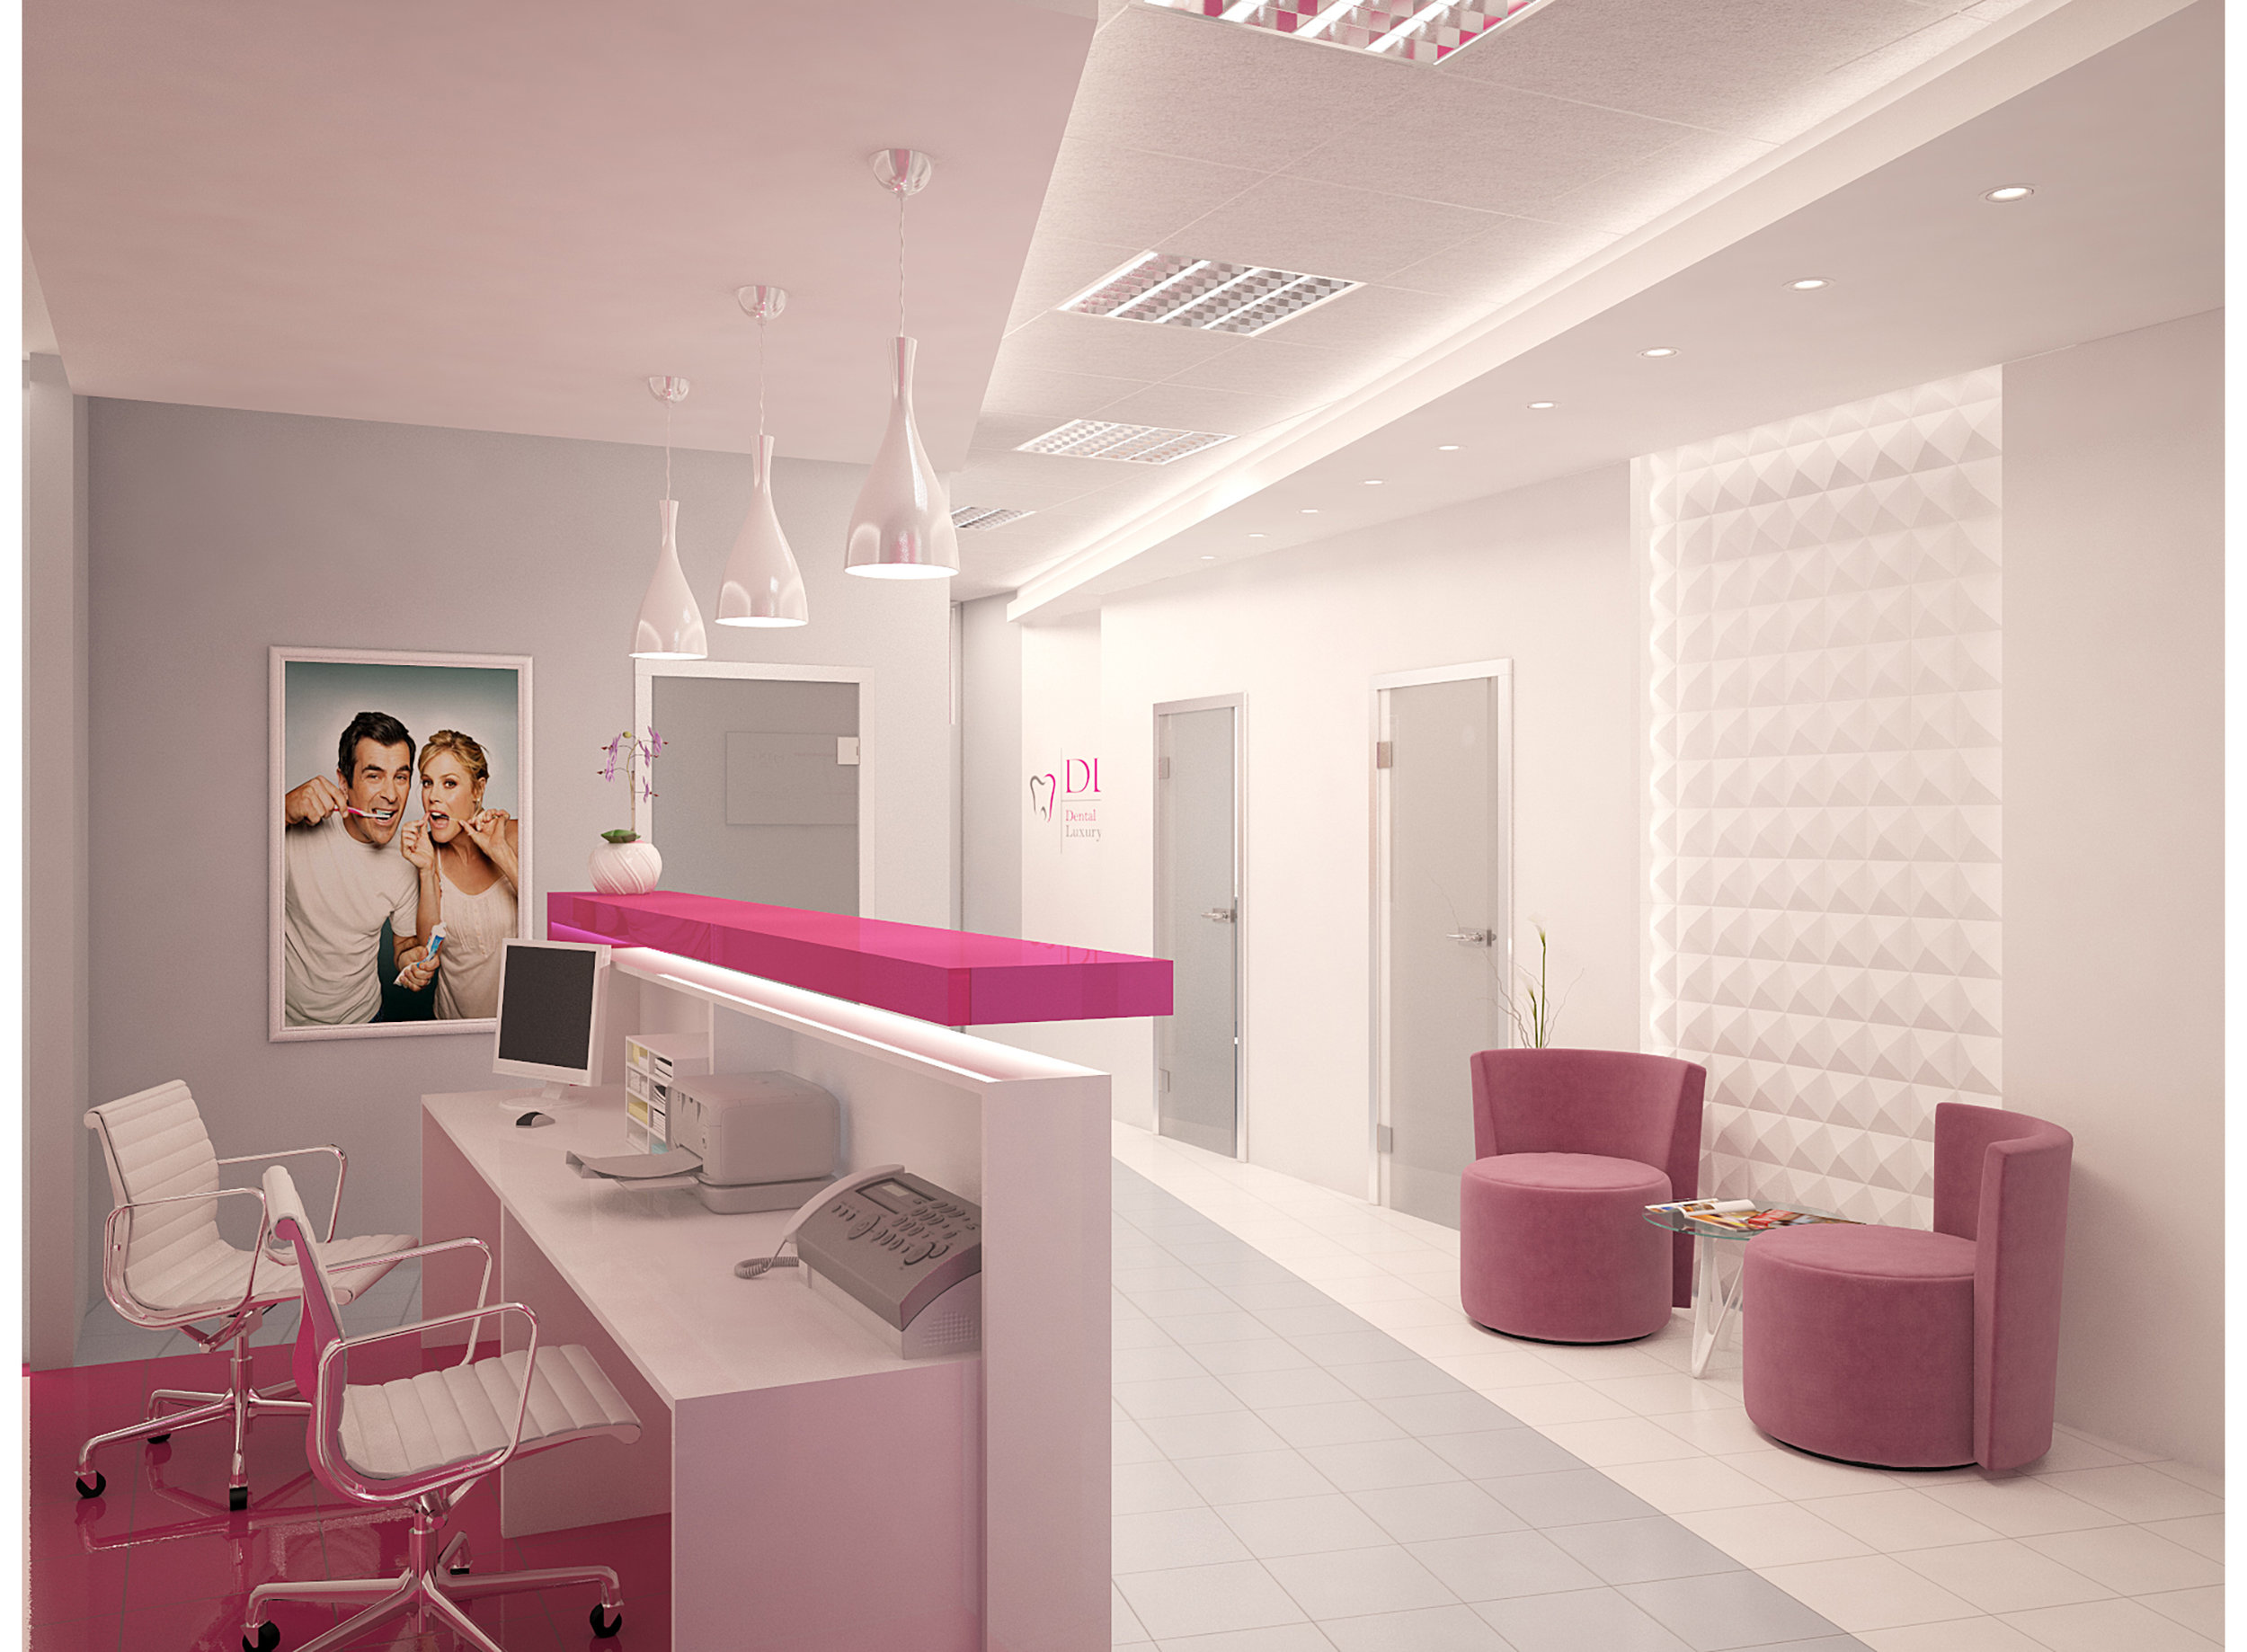 3D interior render of a dental practice